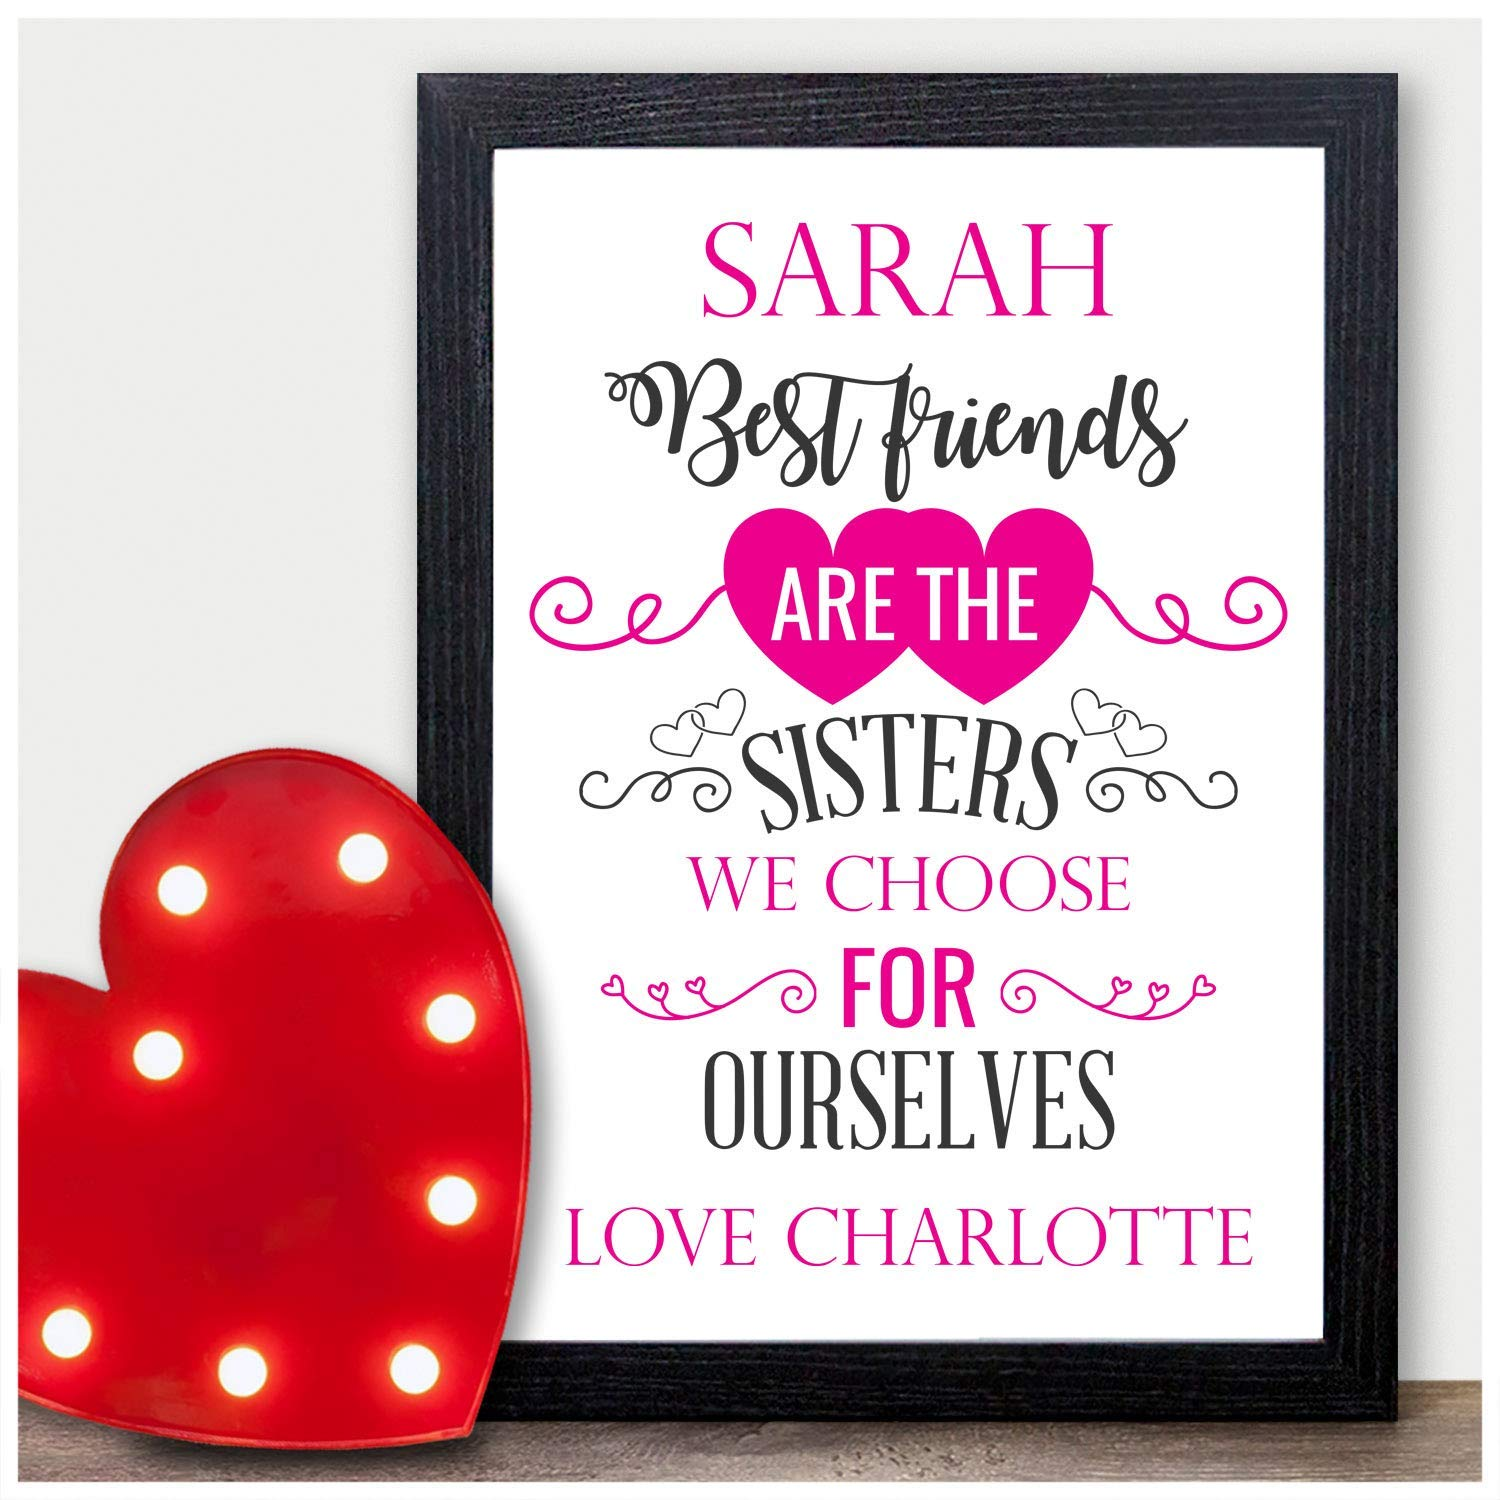 PERSONALISED Best Friends Are The Sisters We Choose For Ourselves Birthday Christmas Xmas Gifts Present for Best Friends BFF PERSONALISED with ANY NAME and ANY RECIPIENT A3 Prints or 18mm Wooden Blocks Black or White Framed A5 A4